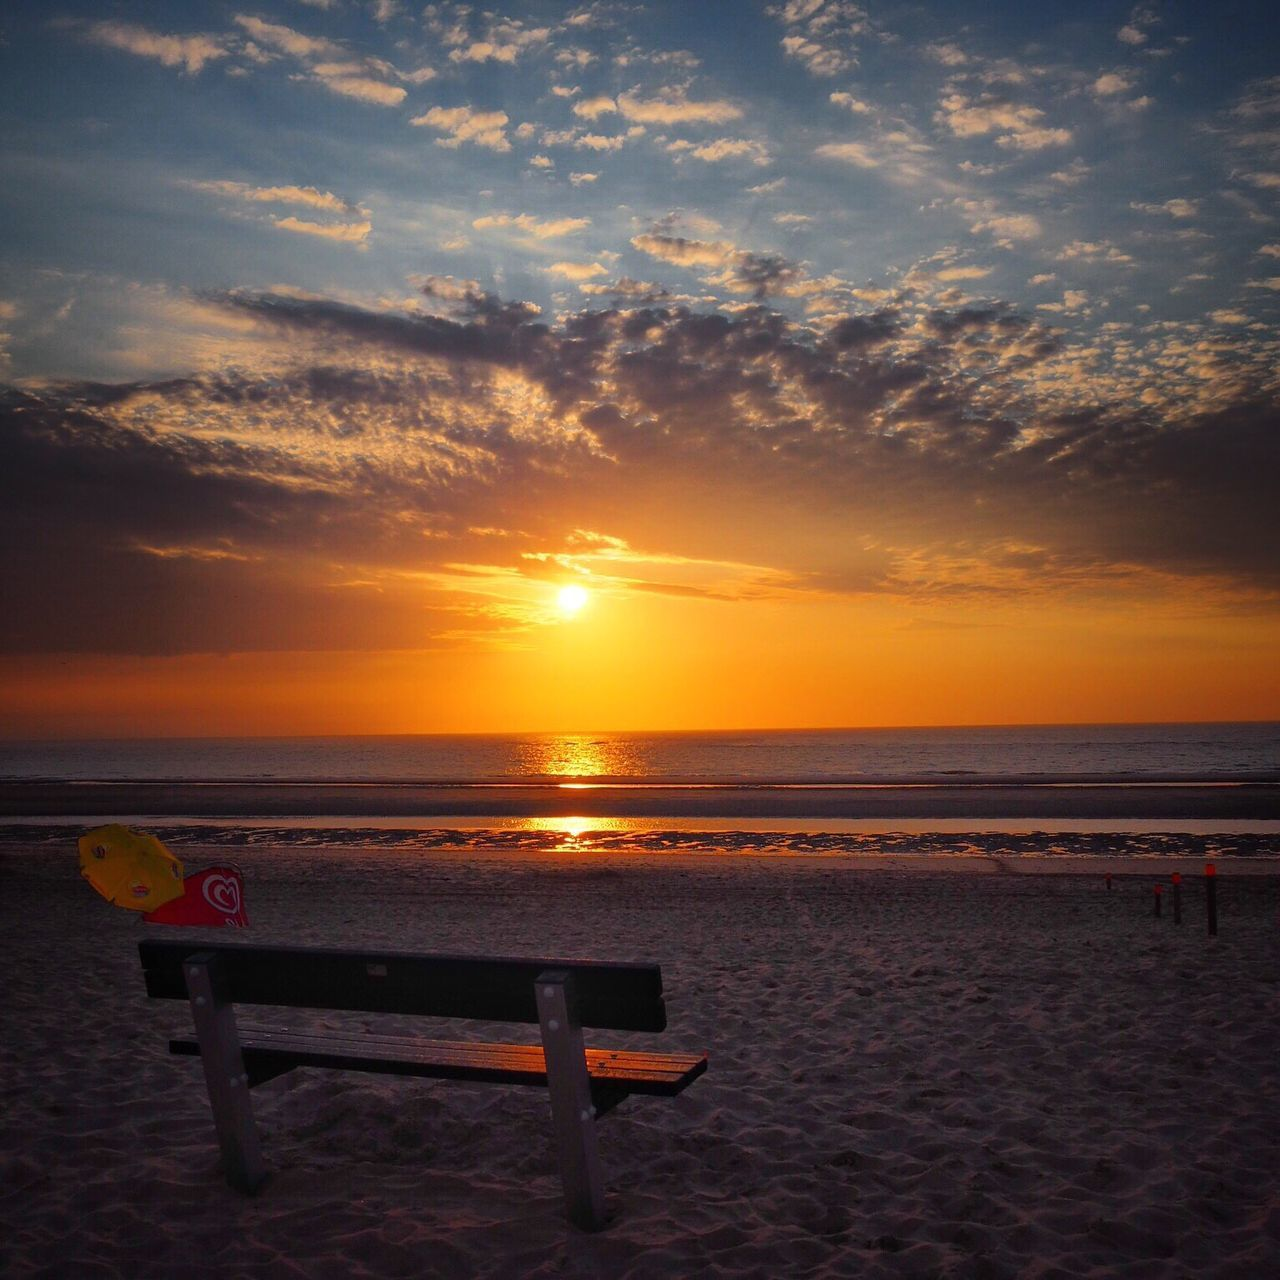 Sunset Sunset_collection Sea Sea And Sky Beach Beachphotography Oostkapelle The Essence Of Summer Feel The Journey Original Experiences 43 Golden Moments Hidden Gems  Colour Of Life Eyeemphoto My Year My View